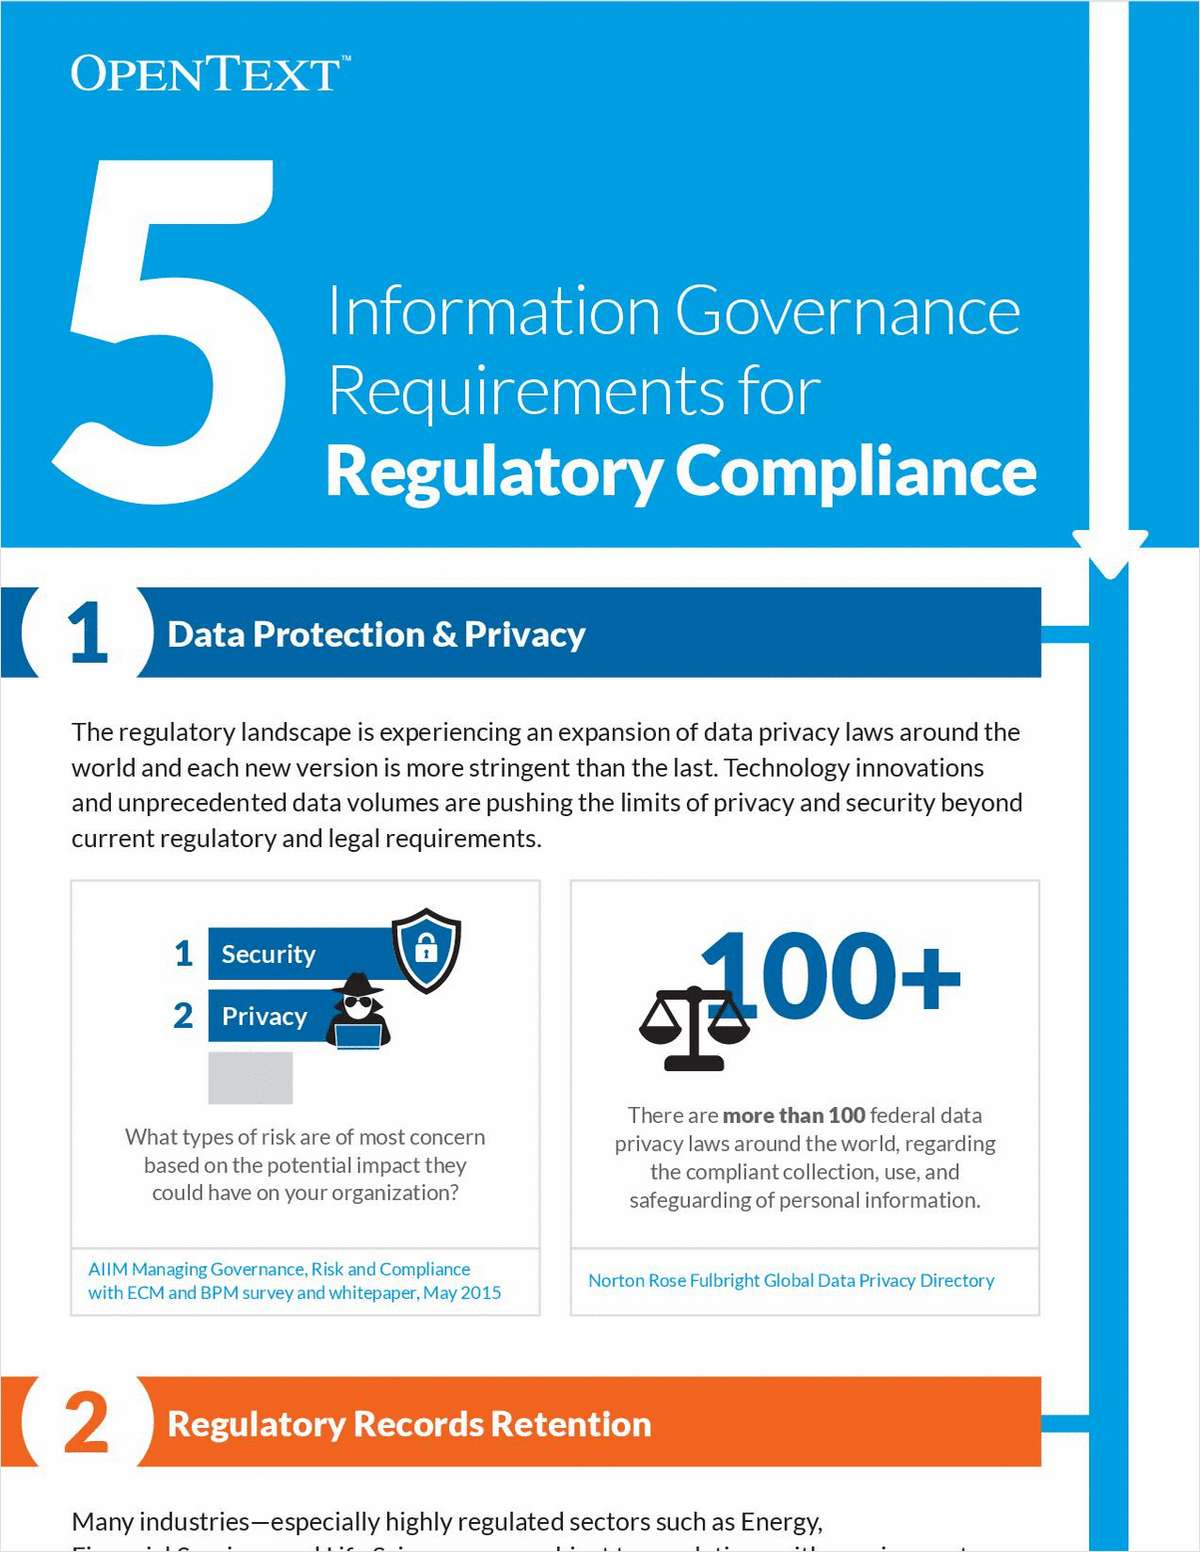 5 Information Governance Requirements for Regulatory Compliance